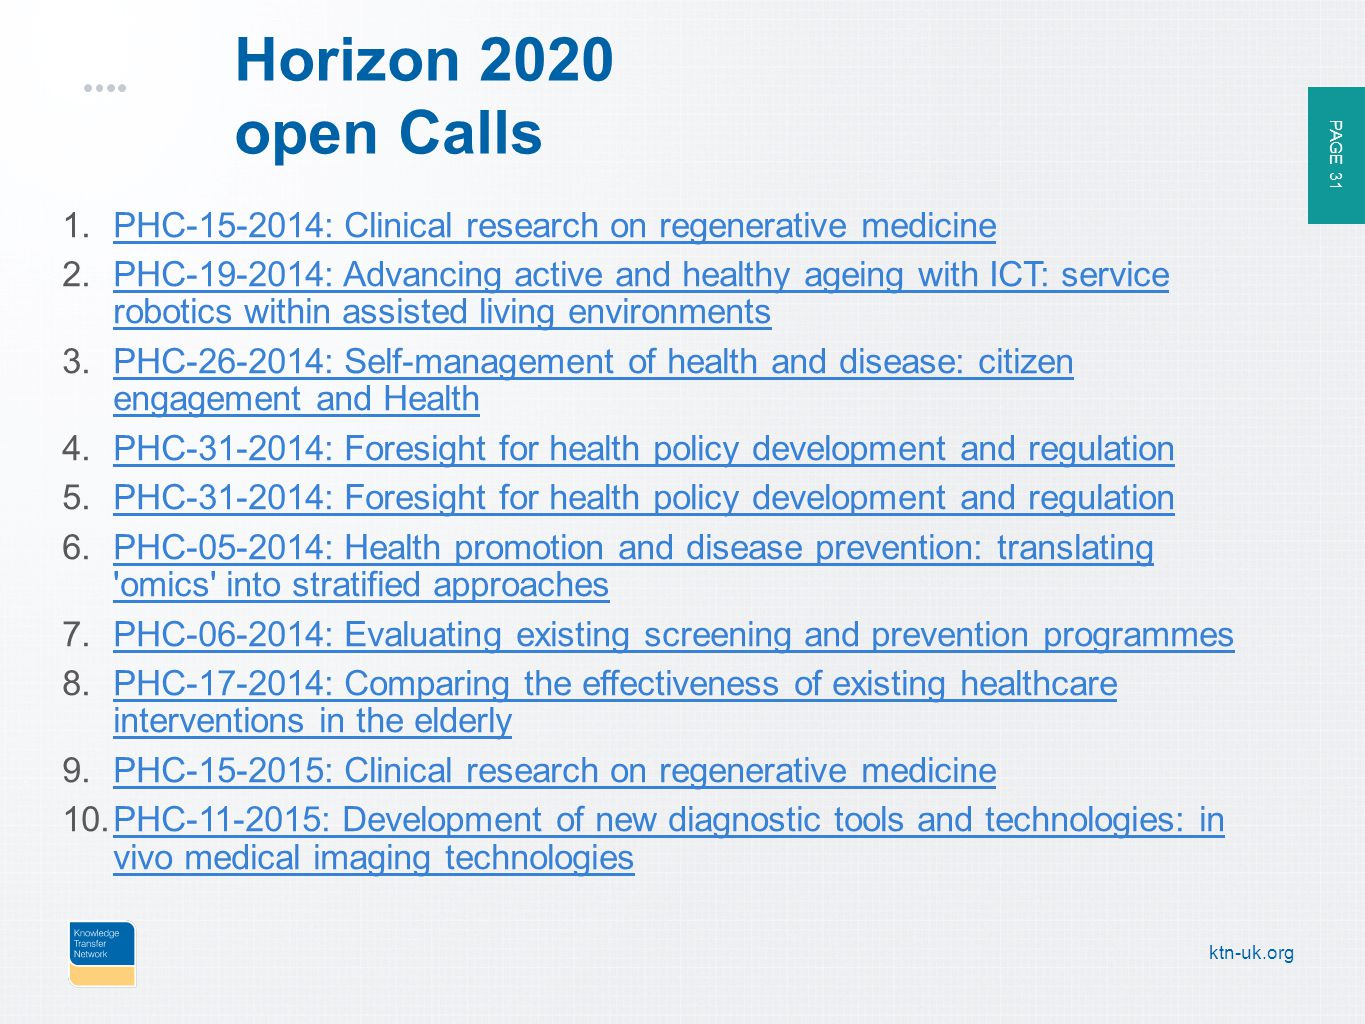 PAGE 31 ktn-uk.org Horizon 2020 open Calls 1.PHC : Clinical research on regenerative medicinePHC : Clinical research on regenerative medicine 2.PHC : Advancing active and healthy ageing with ICT: service robotics within assisted living environmentsPHC : Advancing active and healthy ageing with ICT: service robotics within assisted living environments 3.PHC : Self-management of health and disease: citizen engagement and HealthPHC : Self-management of health and disease: citizen engagement and Health 4.PHC : Foresight for health policy development and regulationPHC : Foresight for health policy development and regulation 5.PHC : Foresight for health policy development and regulationPHC : Foresight for health policy development and regulation 6.PHC : Health promotion and disease prevention: translating omics into stratified approachesPHC : Health promotion and disease prevention: translating omics into stratified approaches 7.PHC : Evaluating existing screening and prevention programmesPHC : Evaluating existing screening and prevention programmes 8.PHC : Comparing the effectiveness of existing healthcare interventions in the elderlyPHC : Comparing the effectiveness of existing healthcare interventions in the elderly 9.PHC : Clinical research on regenerative medicinePHC : Clinical research on regenerative medicine 10.PHC : Development of new diagnostic tools and technologies: in vivo medical imaging technologiesPHC : Development of new diagnostic tools and technologies: in vivo medical imaging technologies